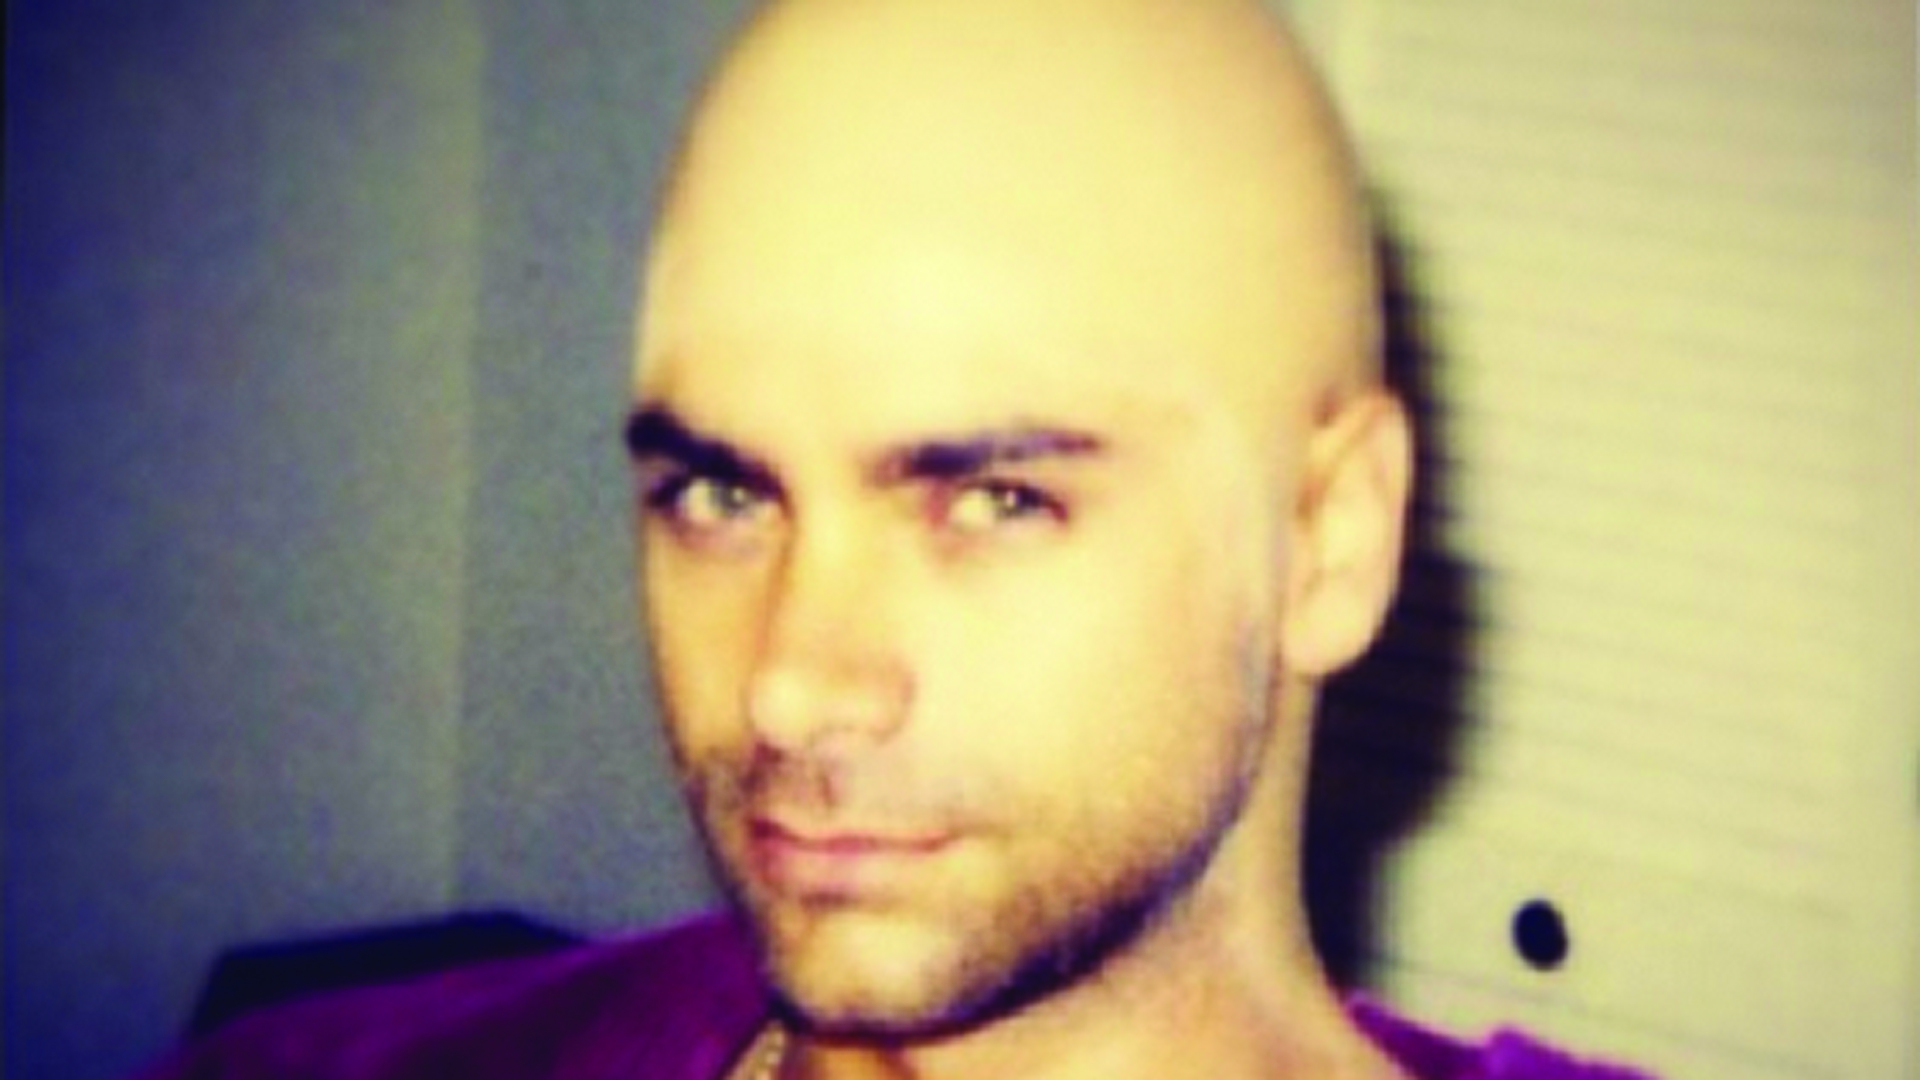 John Stamos Shows Off A Smooth Bald Look